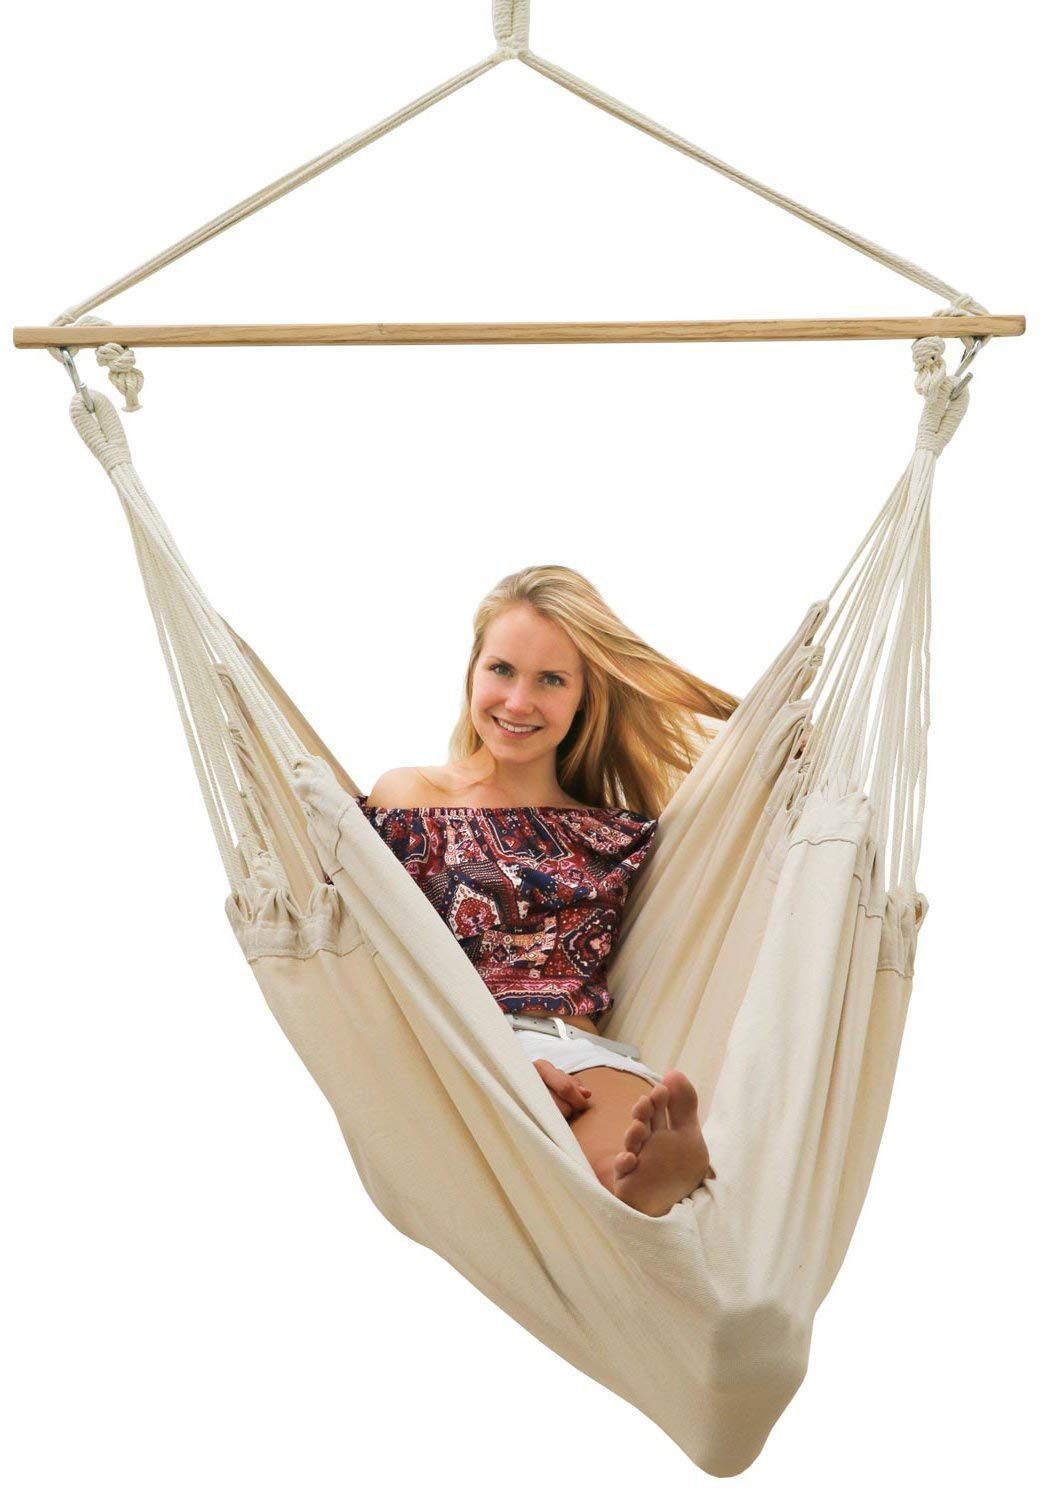 AMANKA Innovative XXL Swing Chair 185x130cm Hanging Seat made of cloth Beige AMANKA SAFER: INNOVATIVE ANTI-SLIP SYSTEM - no risk that the hammock slips off the spreader-bar: the ropes are firmly fixed to the wooden bar and the large canvas is hung with two sturdy metal hooks EXTRA LARGE PIECE OF CLOTH - the strong canvas is made of natural cotton. It is large approx. 185 x 130 cm, so there is plenty of space to sit and even lie down, both alone and in 2 people - suitable for adults and kids SINGLE-SPREADER BAR MADE OF WOOD - the longer the spreader bar, the more comfortable the hammock. Our four-square bar is 115 cm long! It will soon become your favorite spot for reading, dreaming and playing - perfect even as a children's swing 6